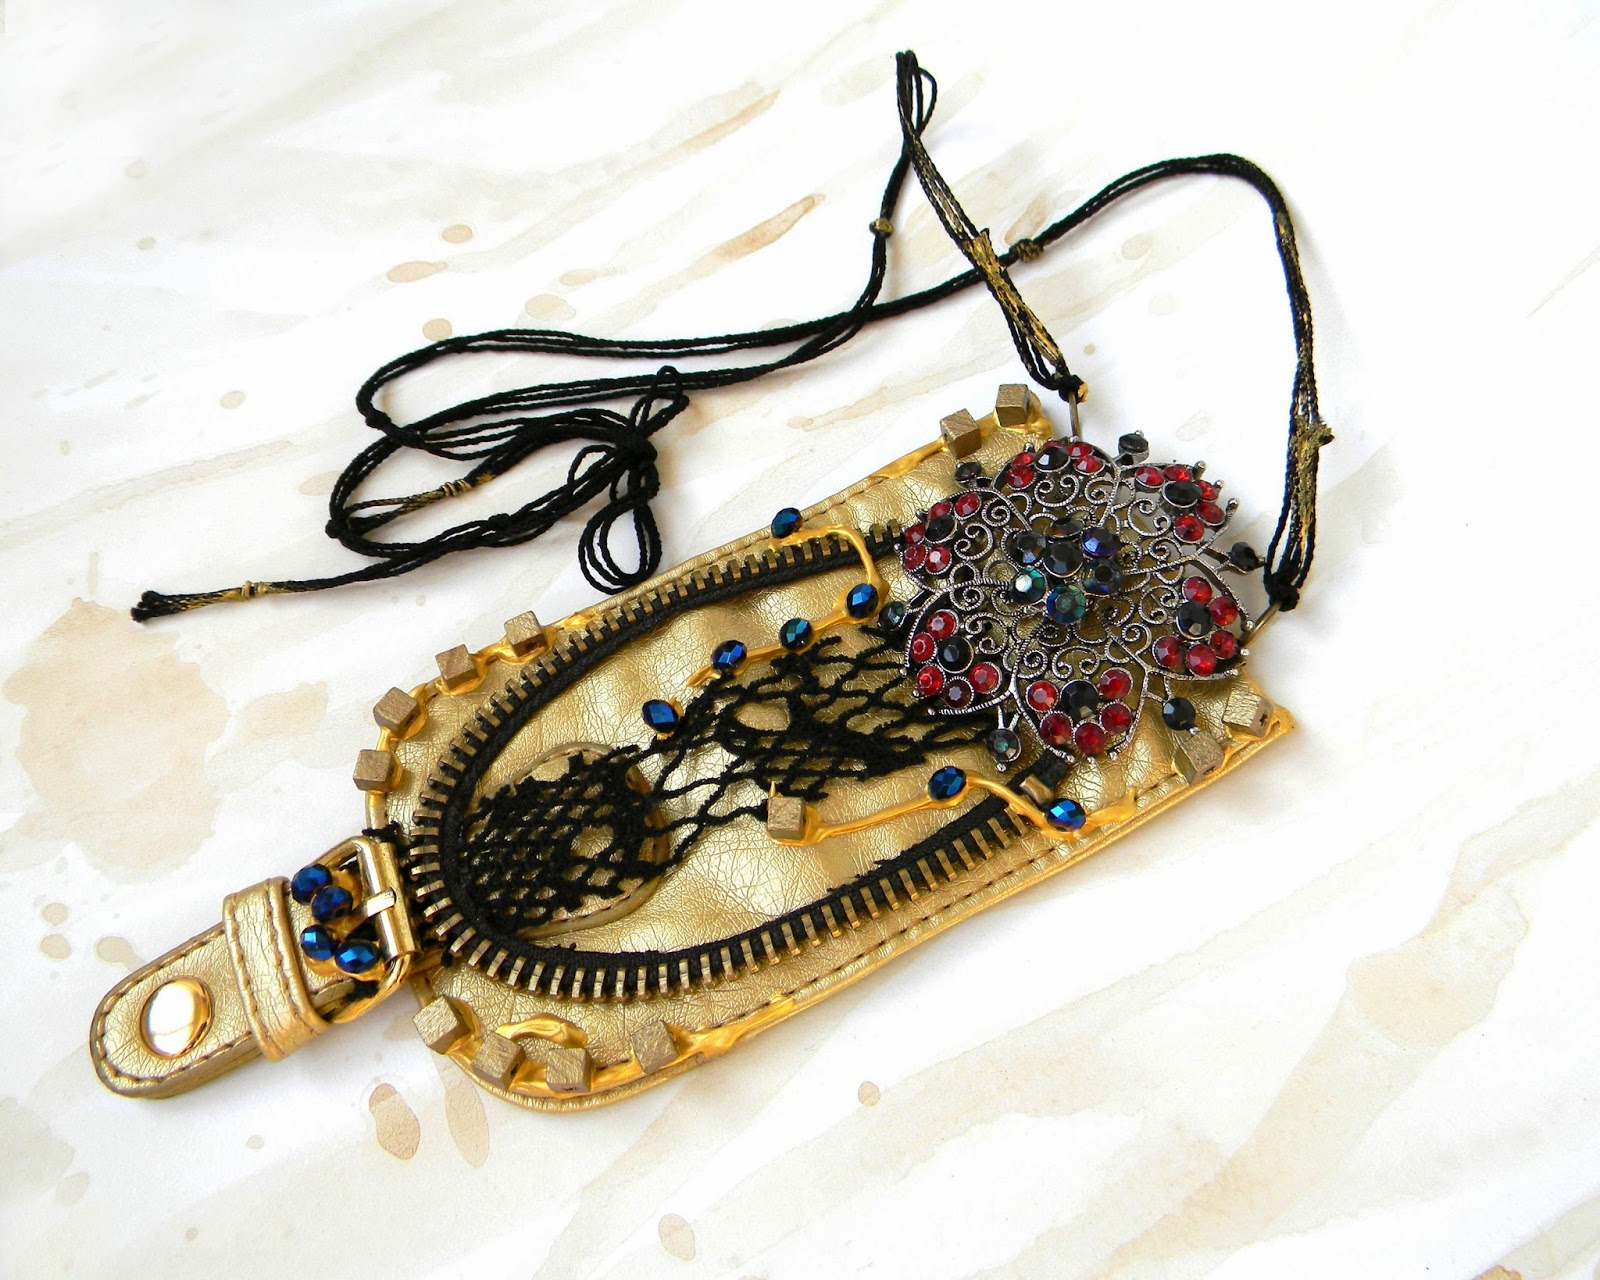 Victorian Gothic Neck Piece, Rich Gold Eco Leather Necklace with Vintage Recycled Brooch and Crystal Beads